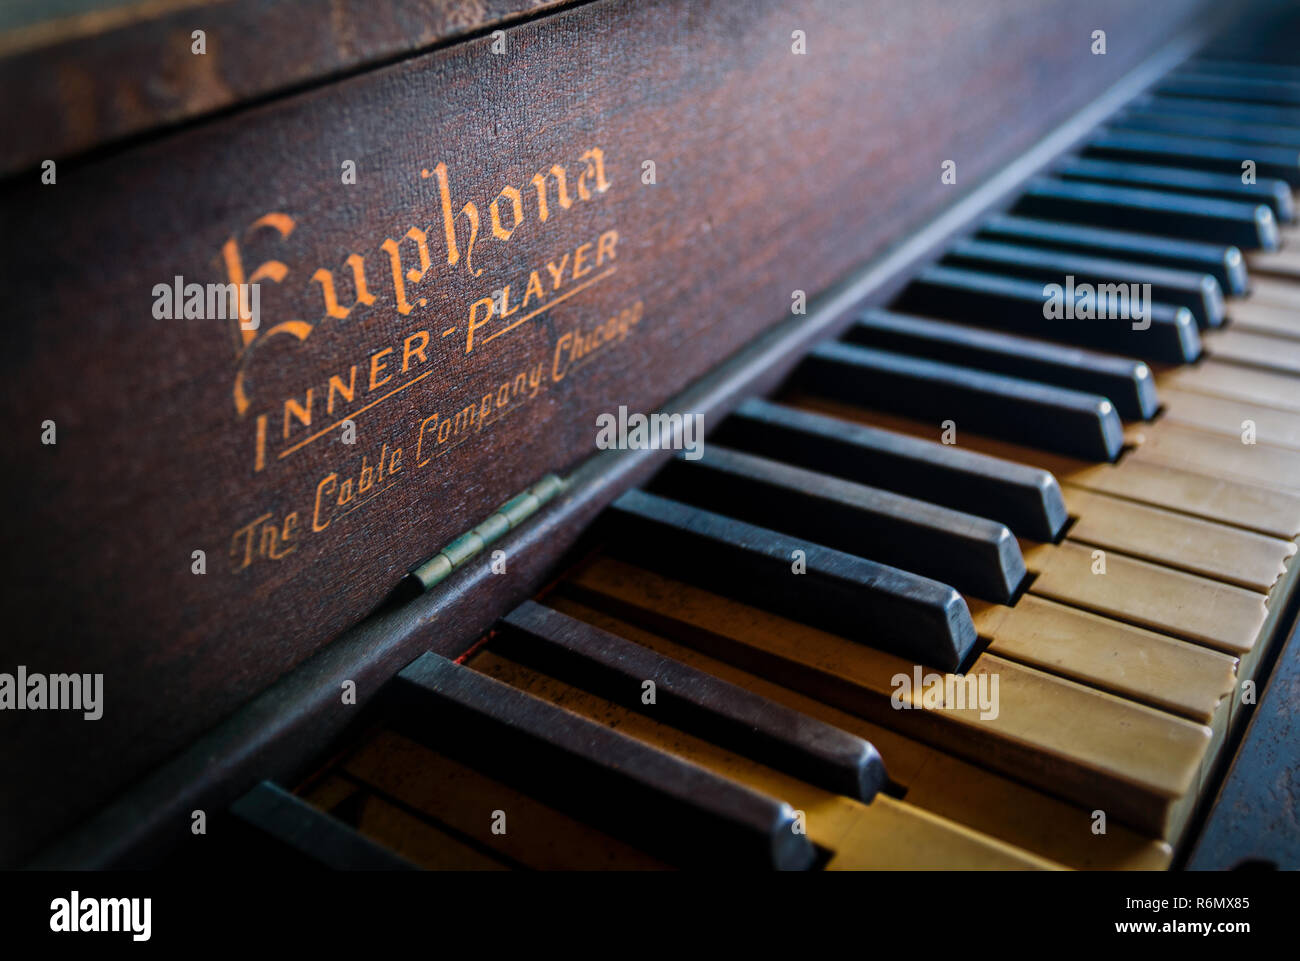 Morning sunlight streams across the keys of an antique Euphona Inner-Player piano for sale at a thrift store in Reform, Alabama. - Stock Image